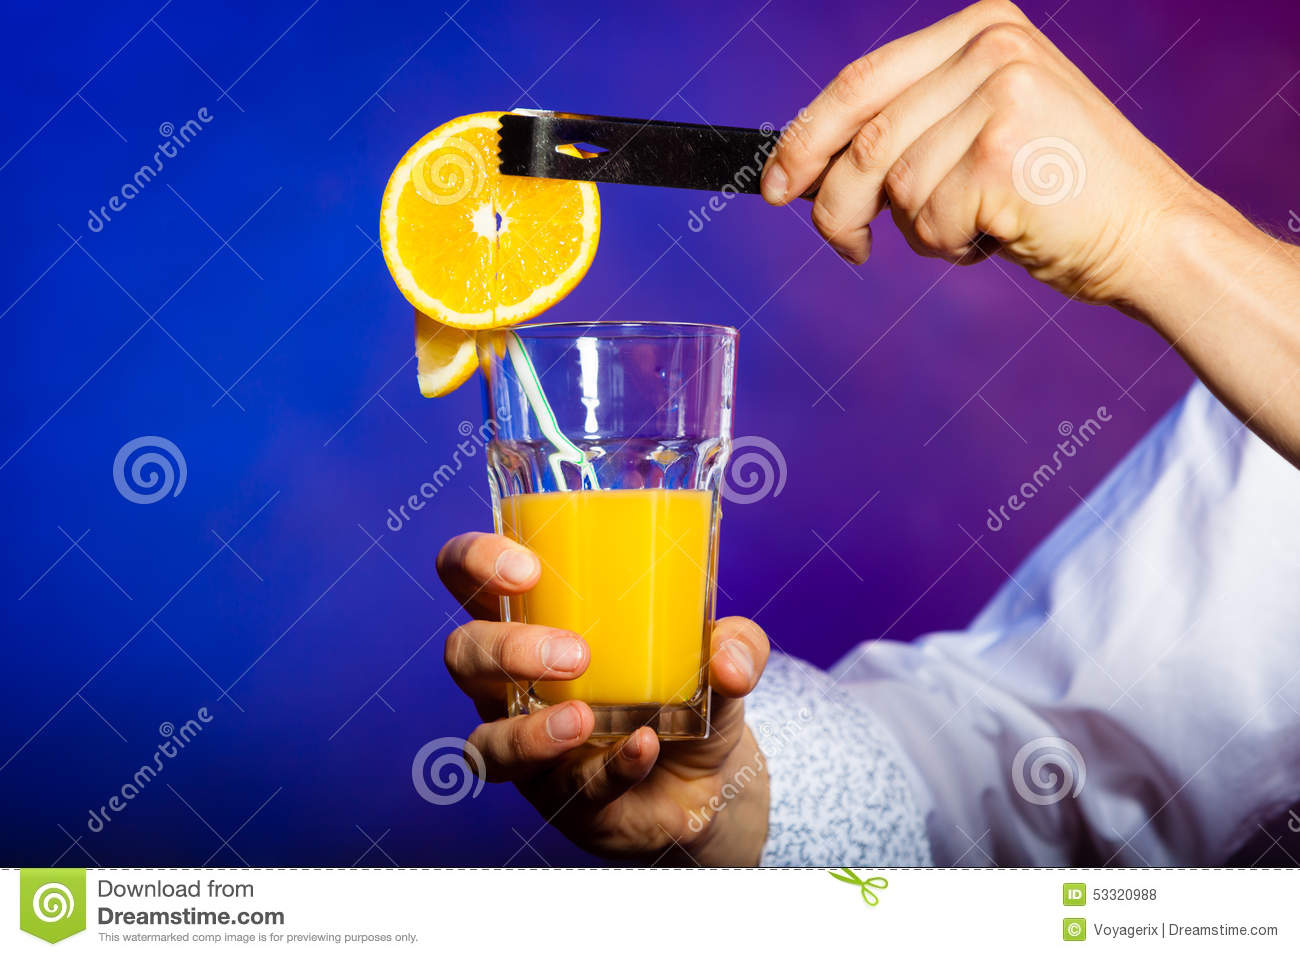 What Is A Jigger When Making A Drink